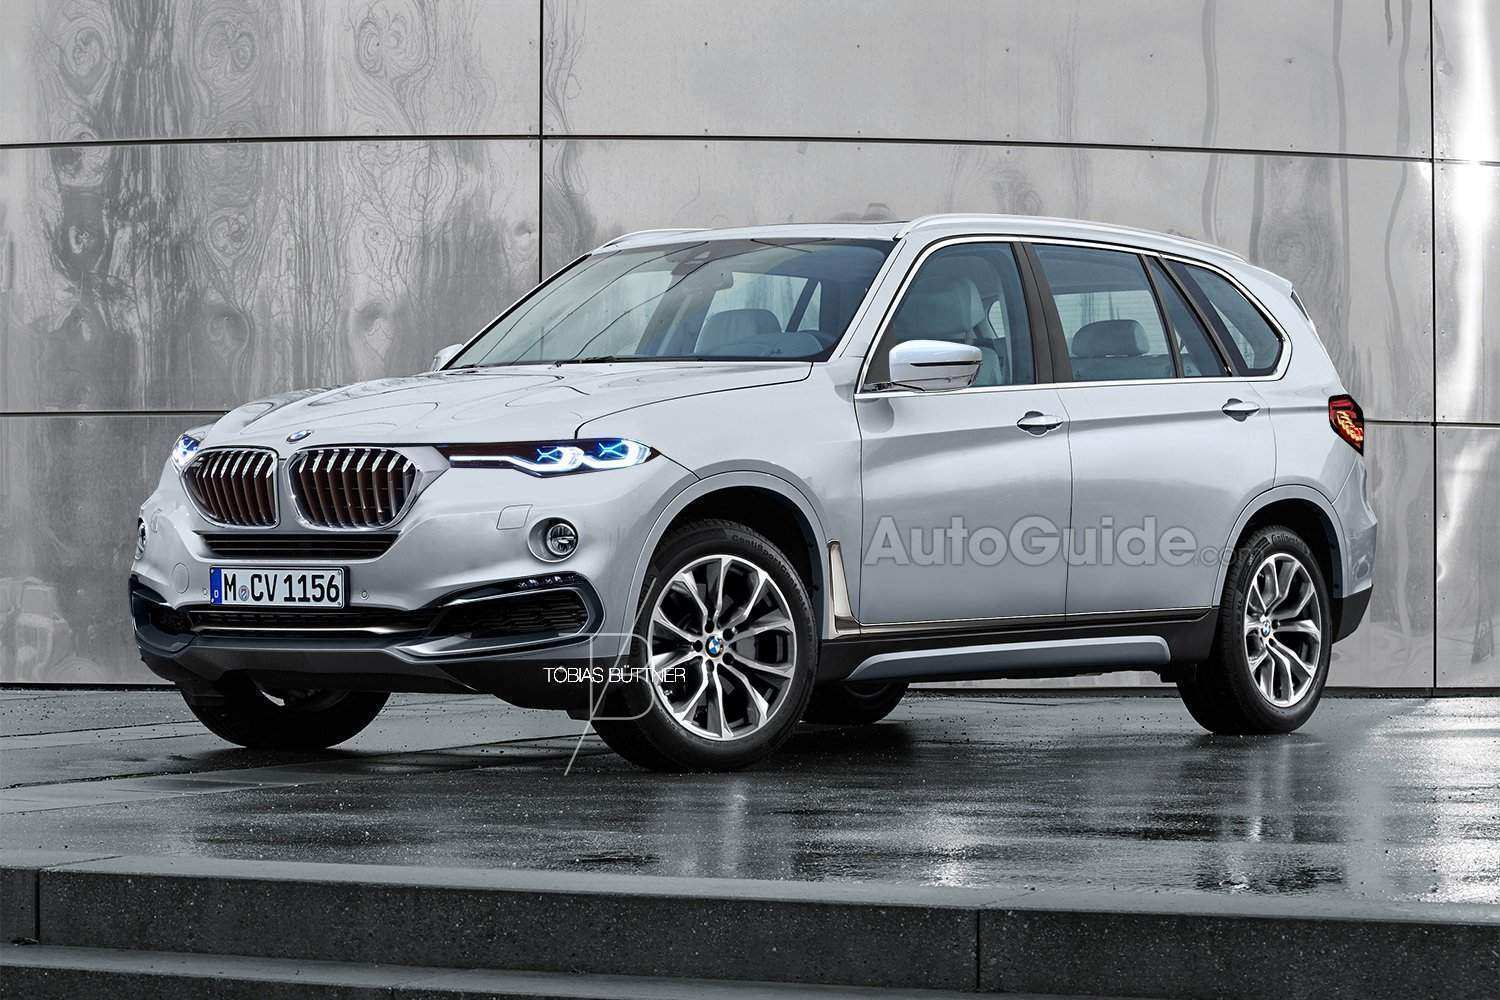 13 Gallery of 2020 BMW X7 Suv Series Exterior and Interior for 2020 BMW X7 Suv Series